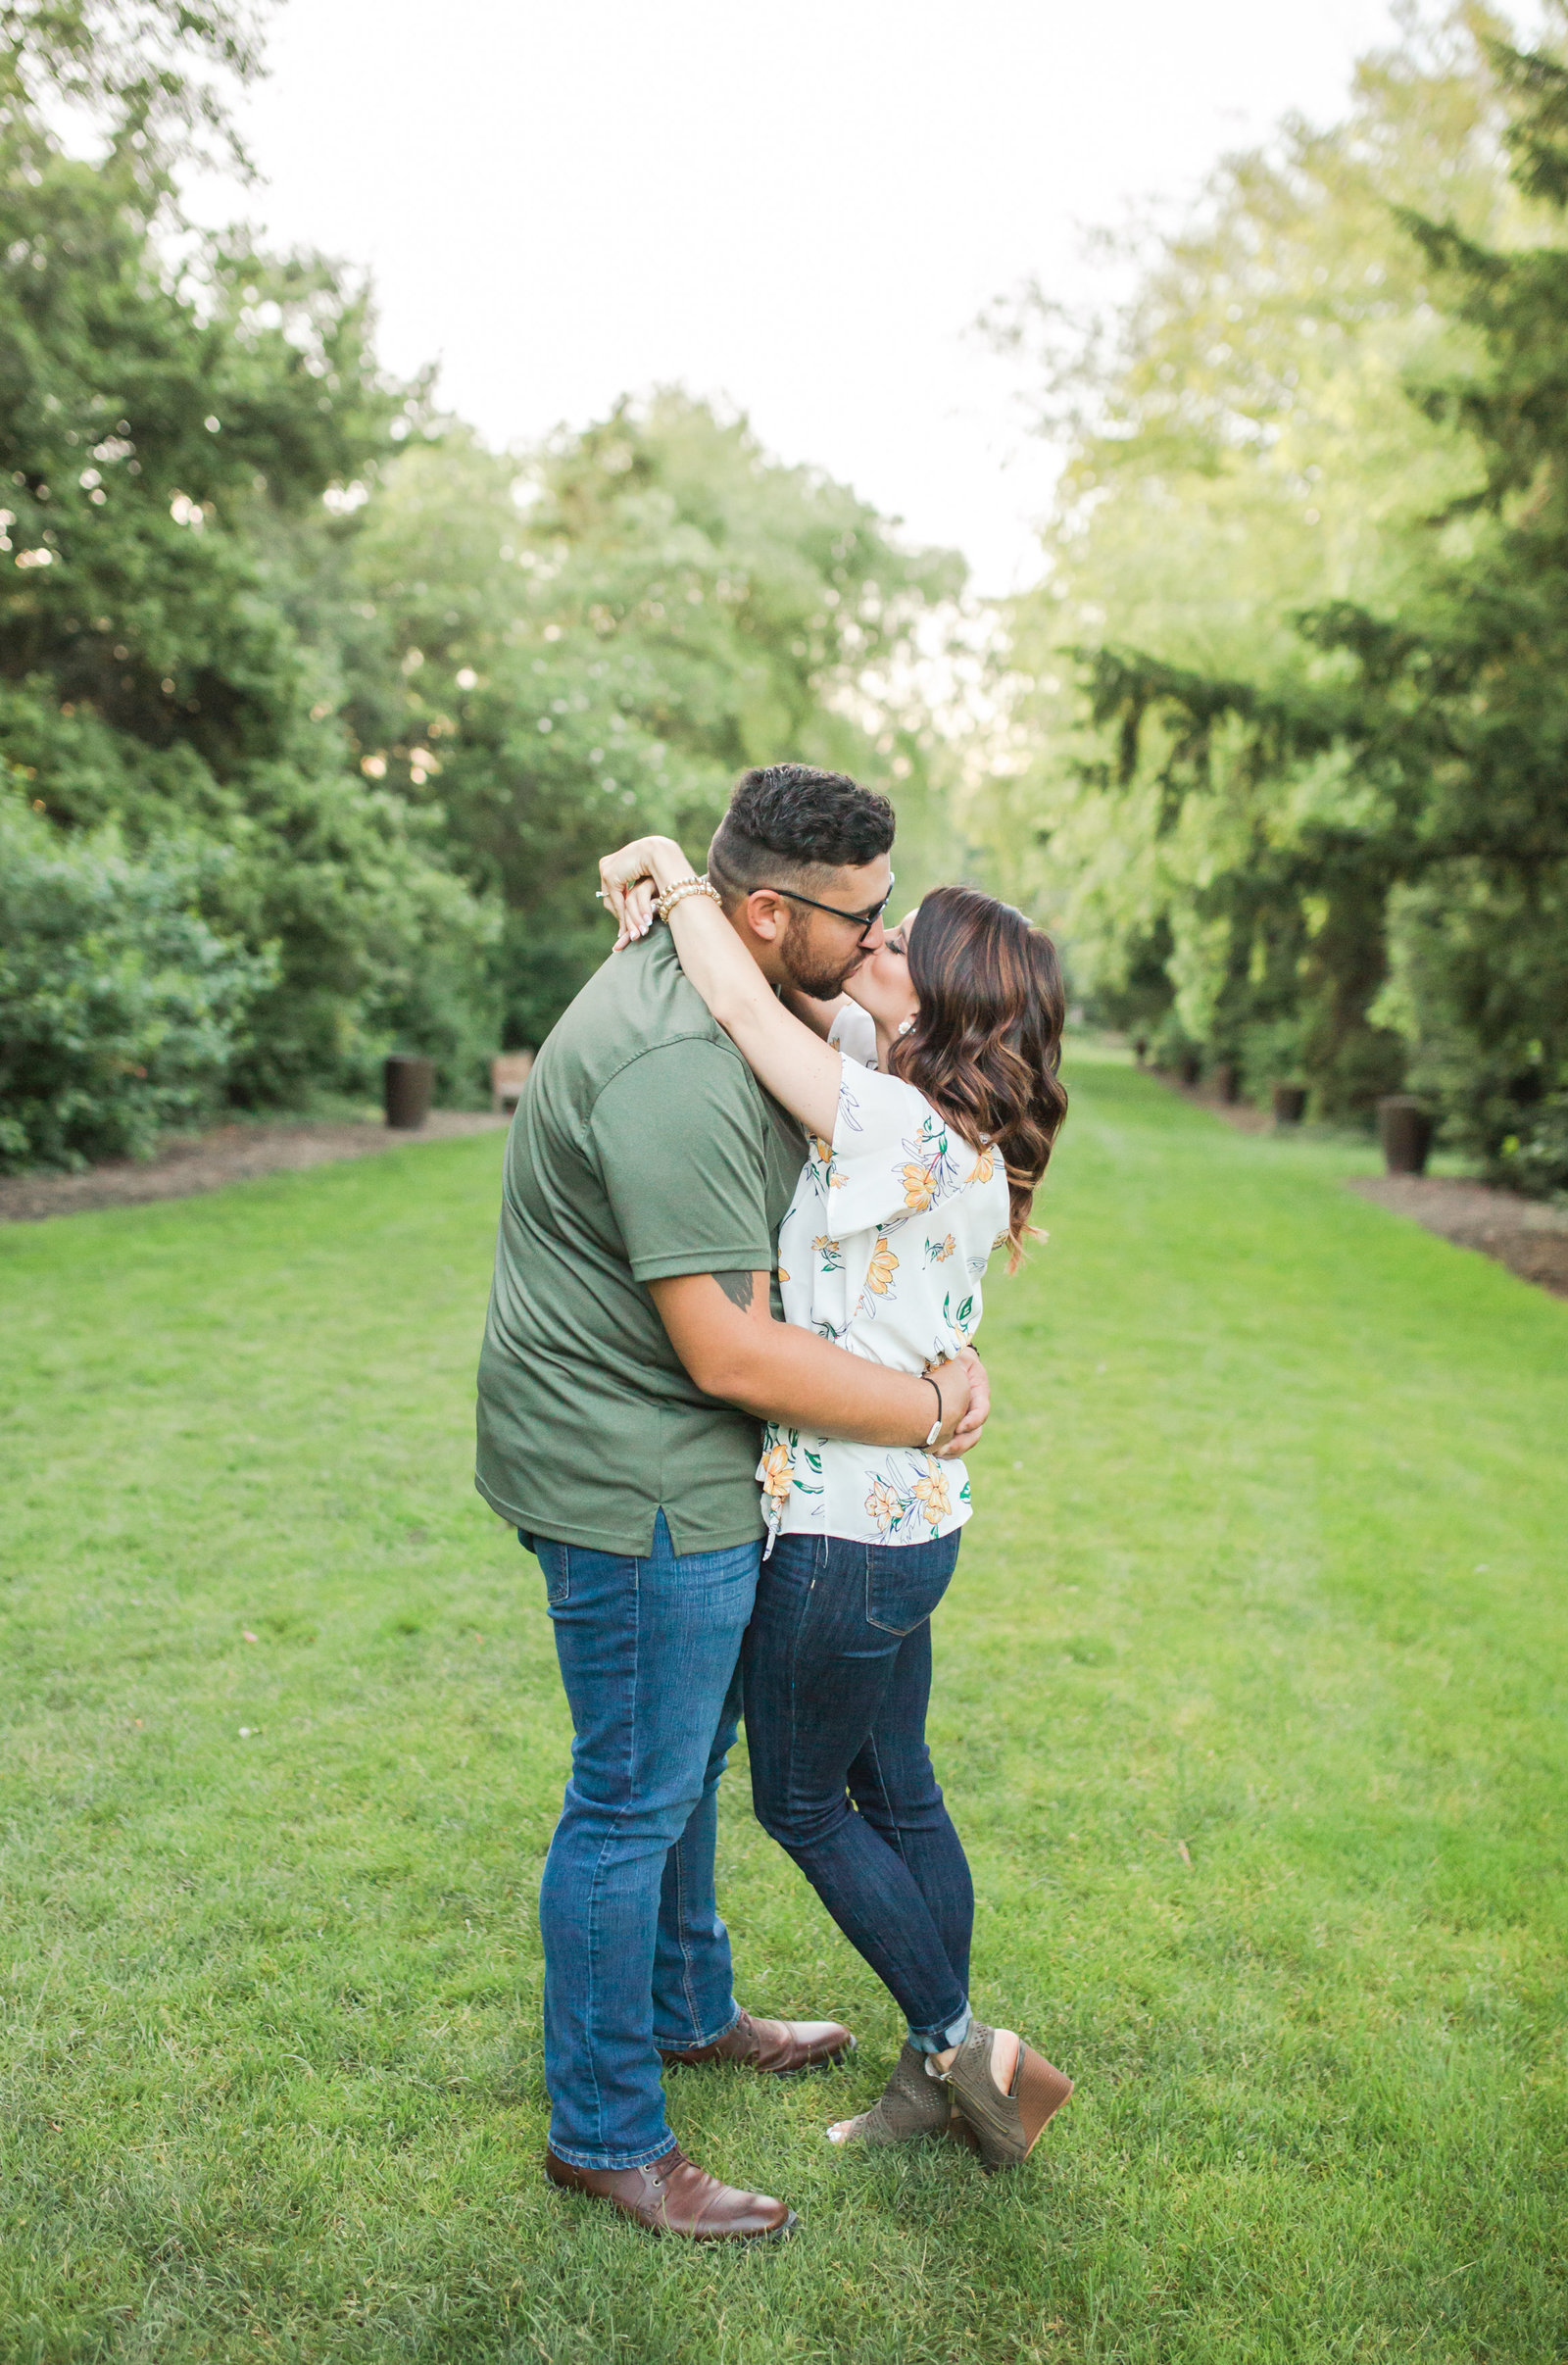 mill-creek-park-engagement-session-allison-ewing-photography-023-1